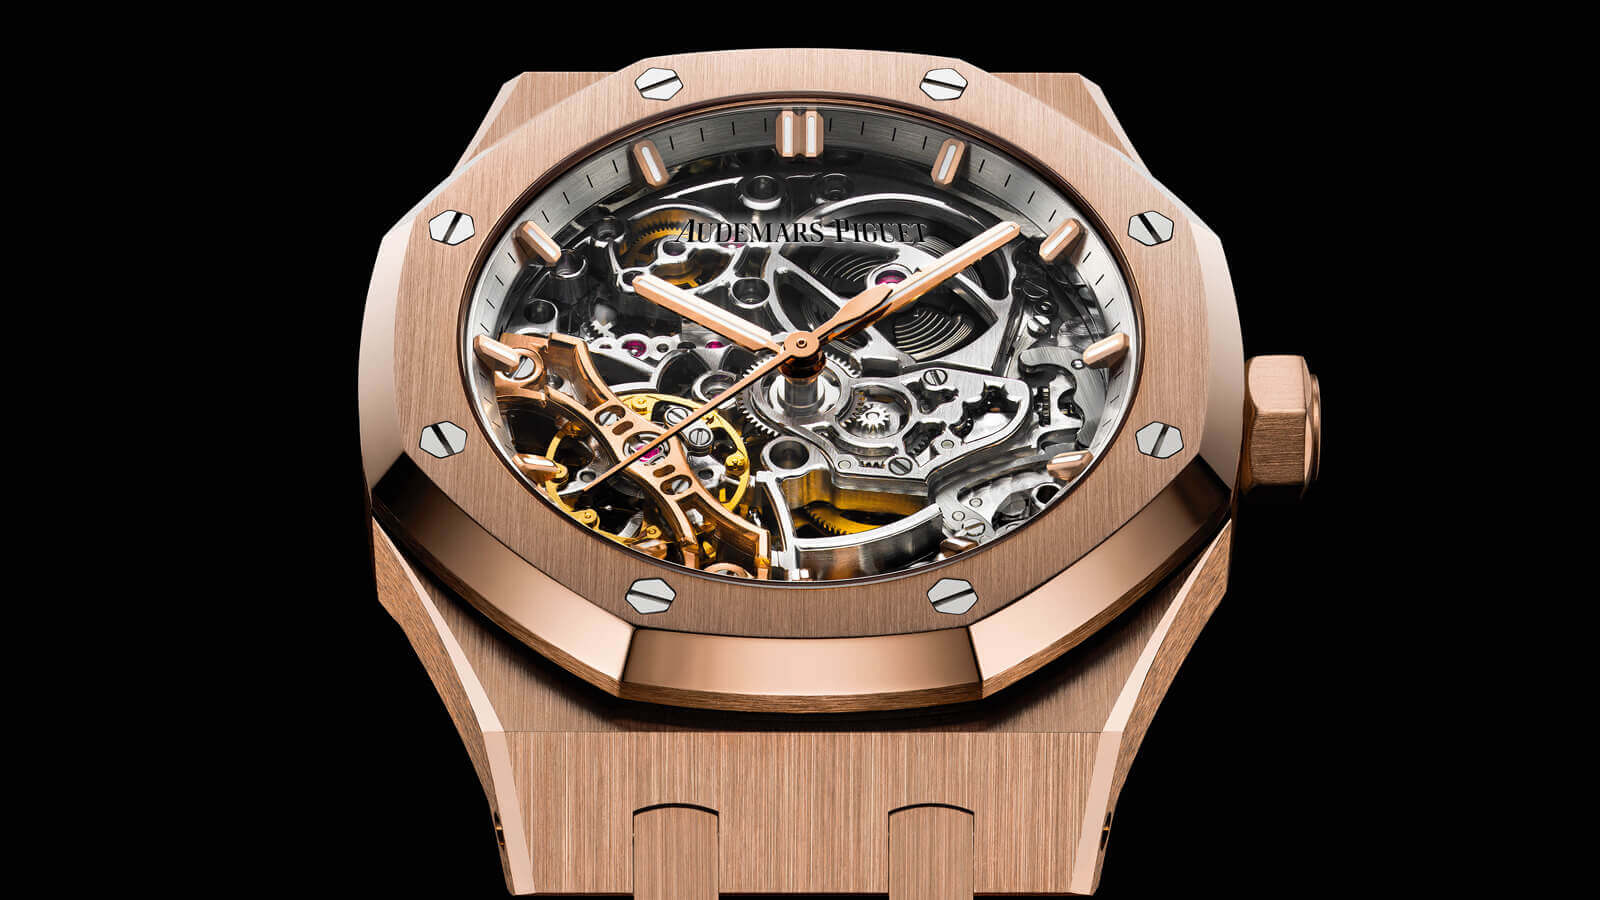 7b4e7e09753 Audemars Piguet Royal Oak Double Balance Wheel Openworked 37mm | REVIEW